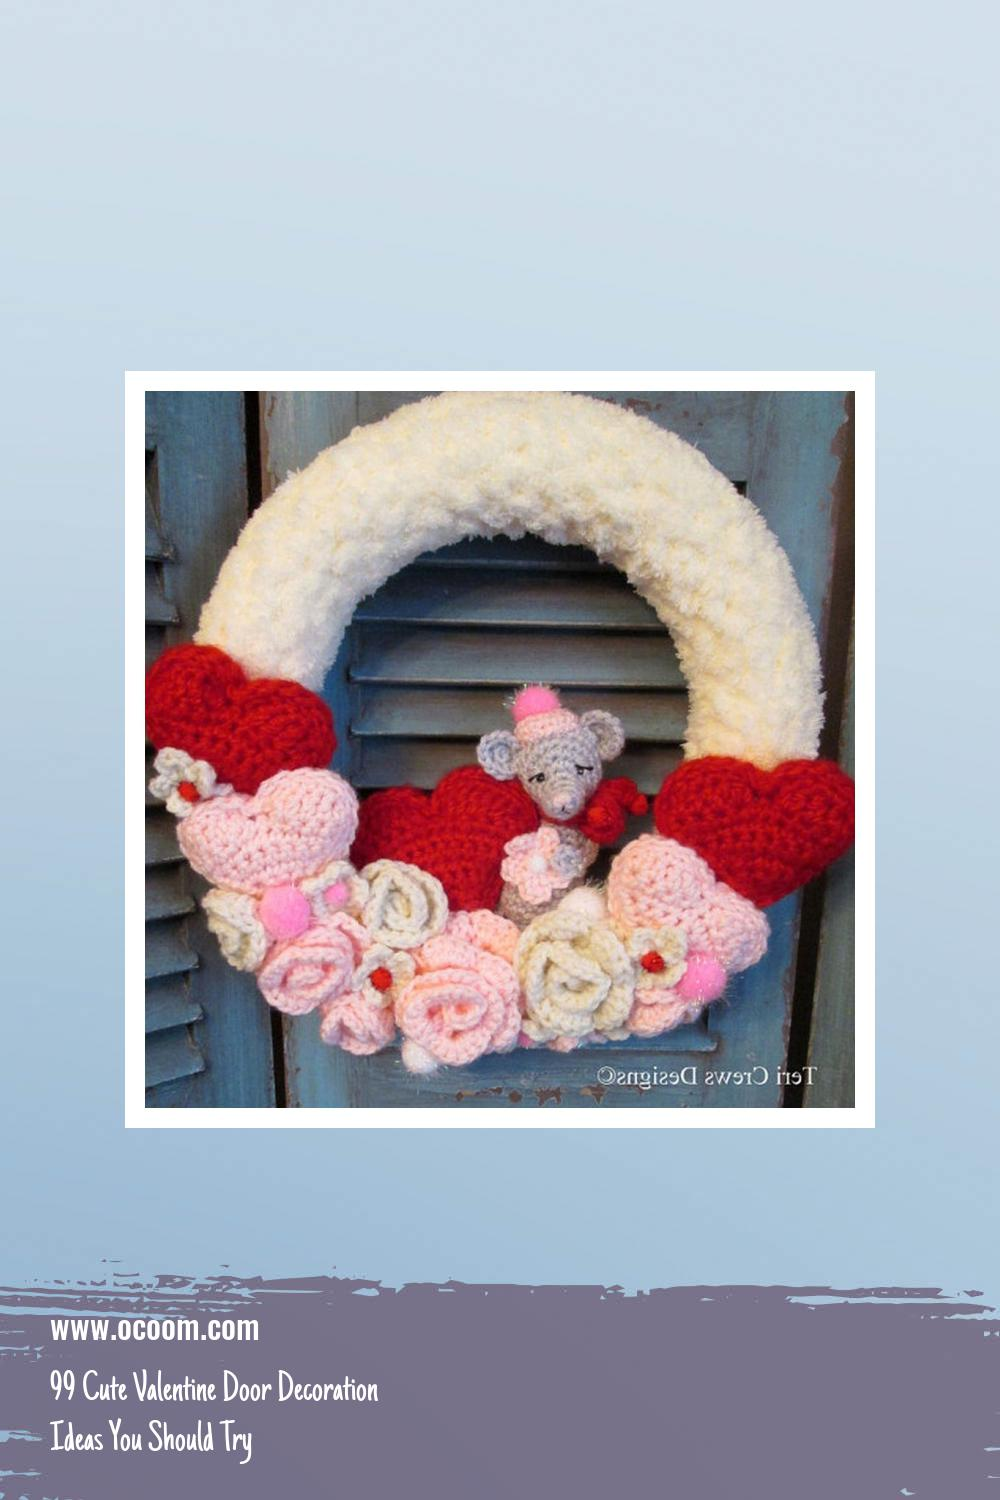 99 Cute Valentine Door Decoration Ideas You Should Try 38